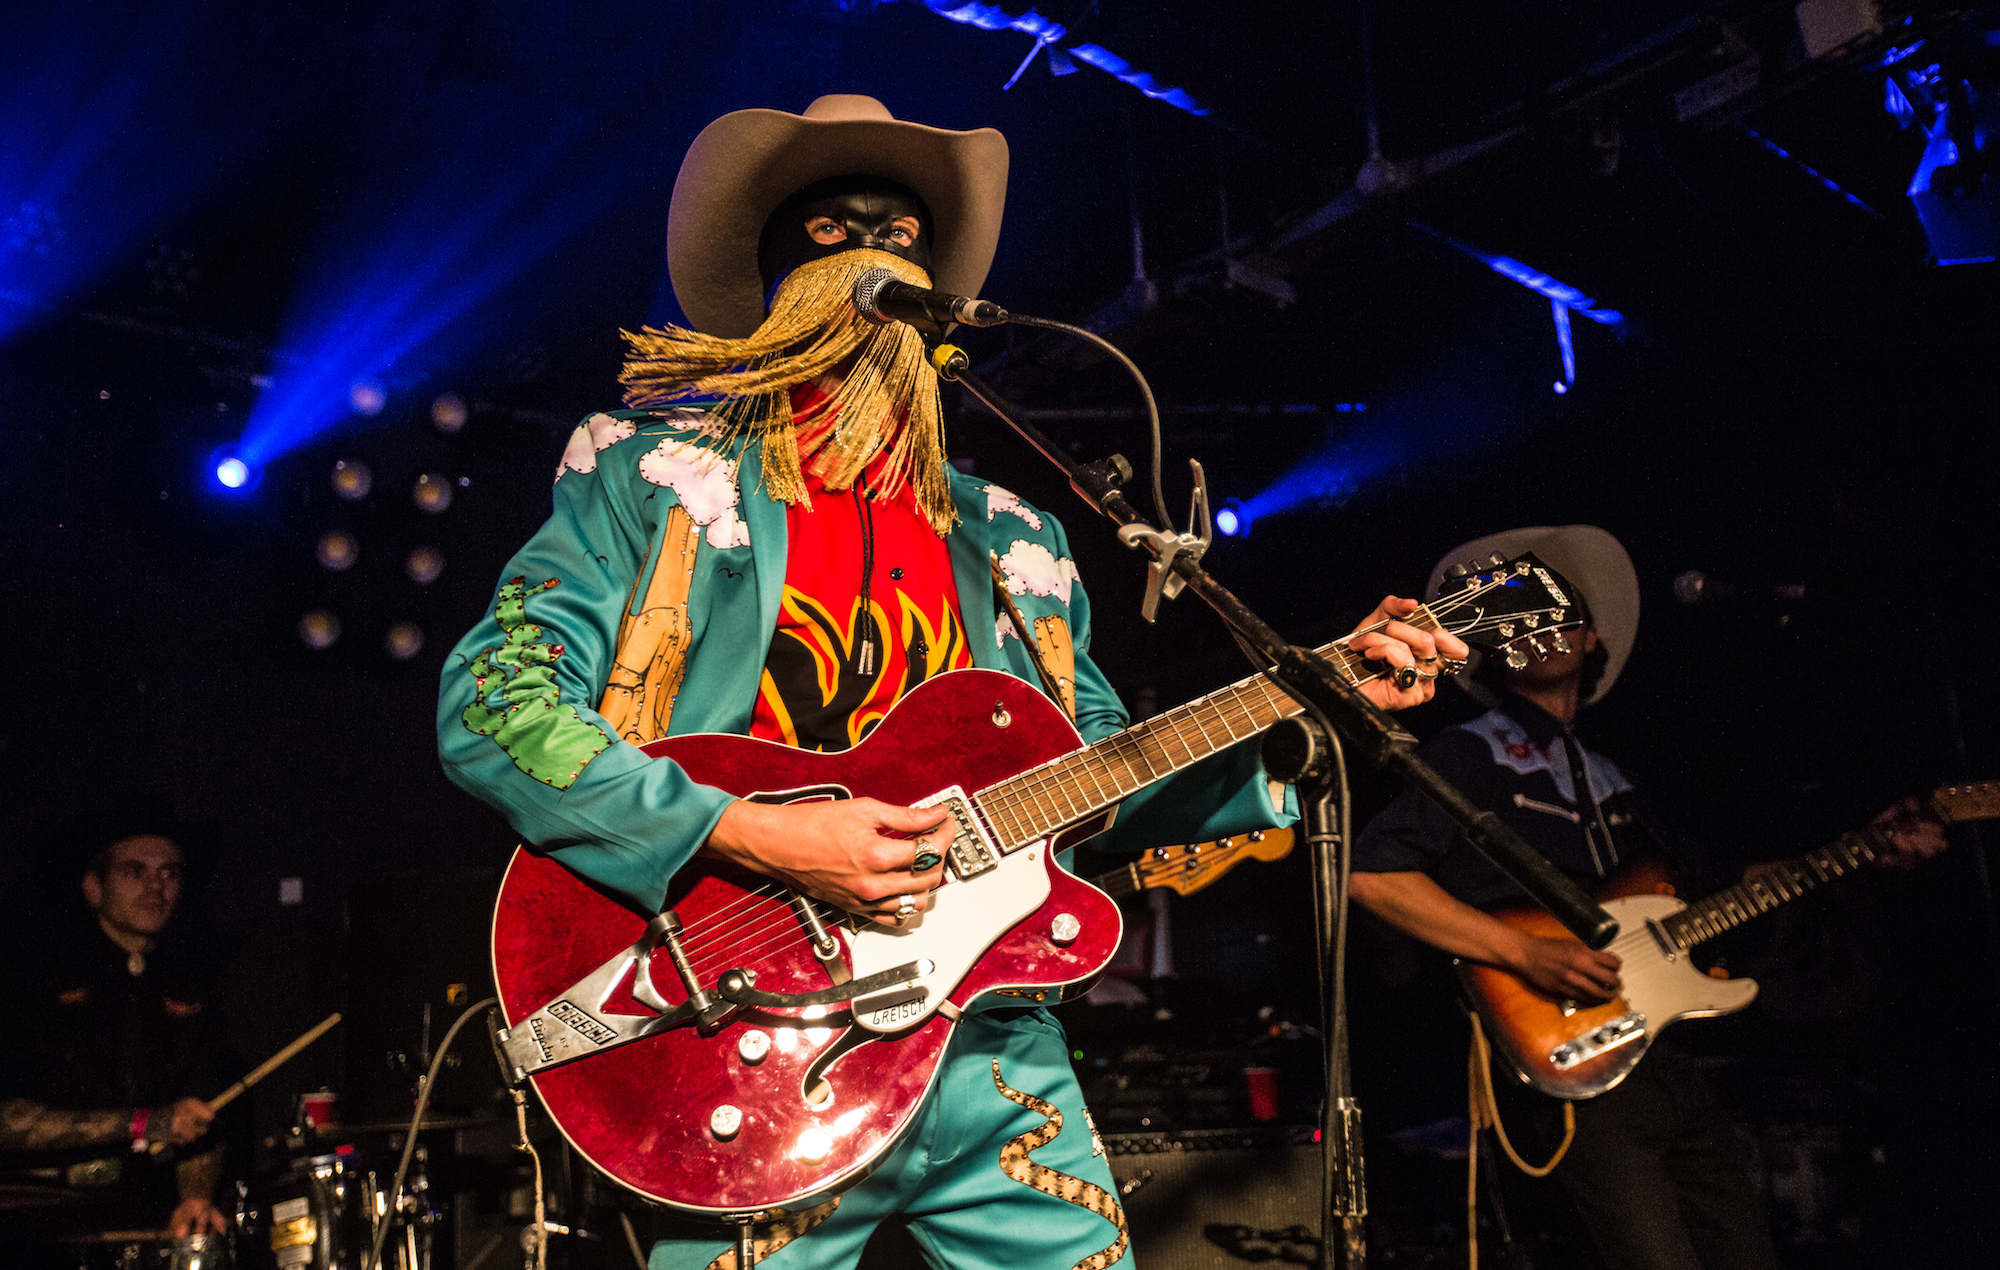 Orville Peck at Visions Festival 2019